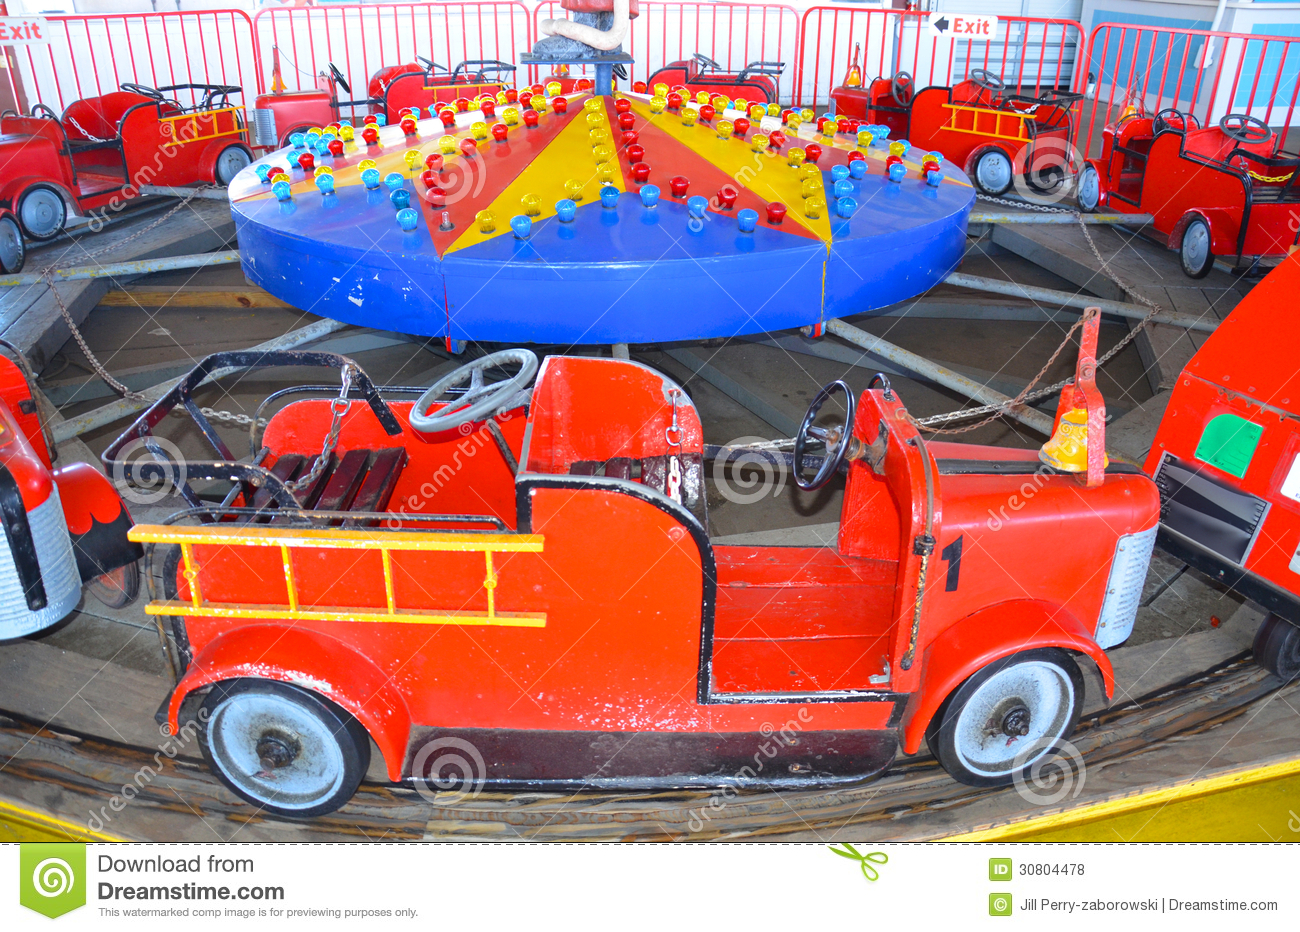 Fire Truck Amusement Ride Royalty Free Stock Photos - Image: 30804478